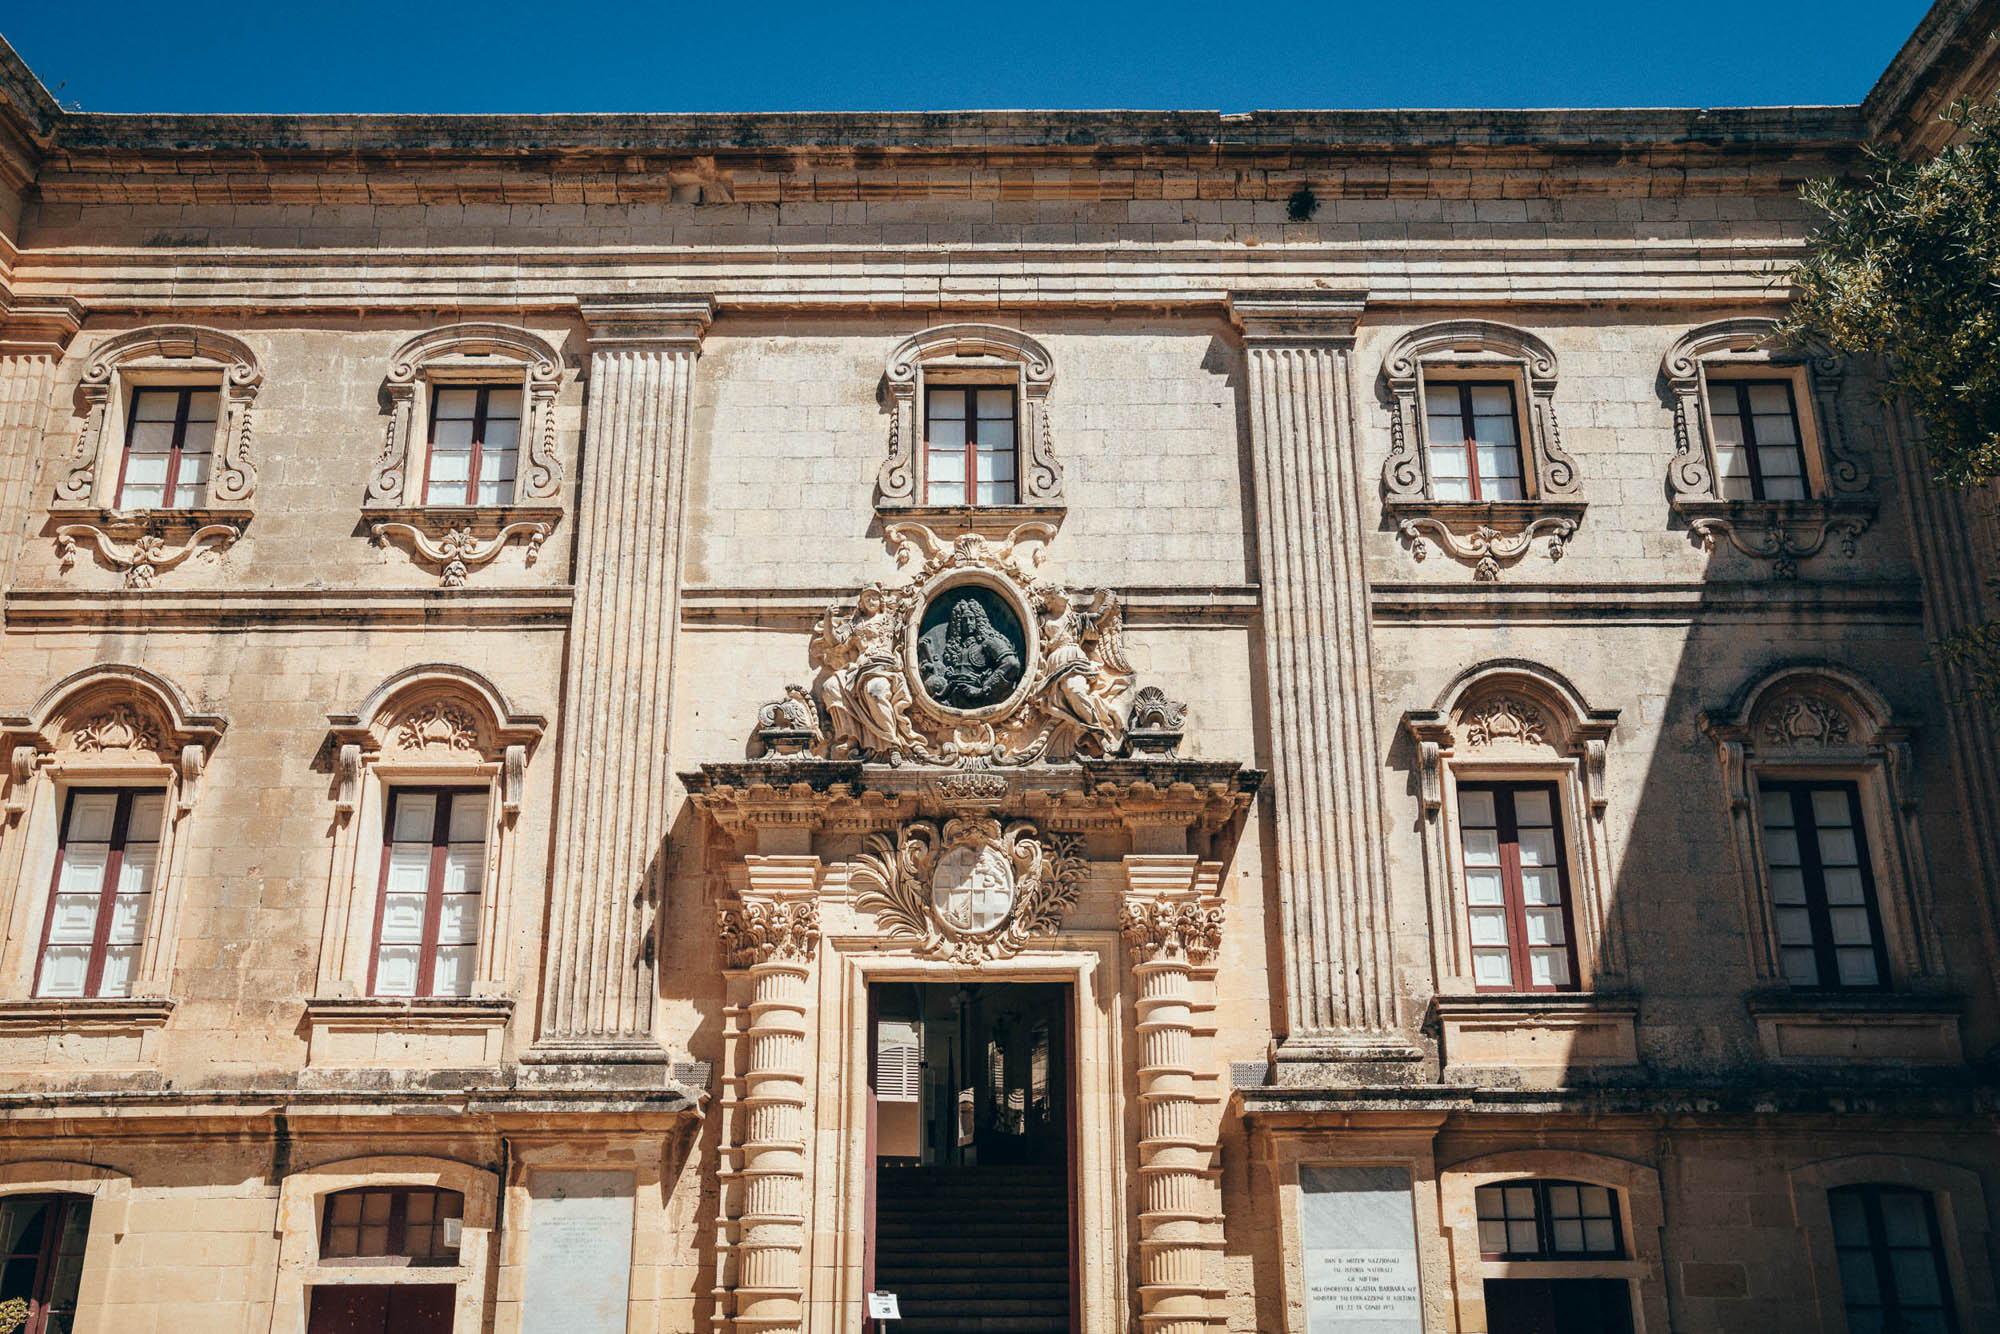 Vilhena Palace also known as the Magisterial Palace and Palazzo Pretorio, is a French Baroque palace in Mdina, Republic of Malta.